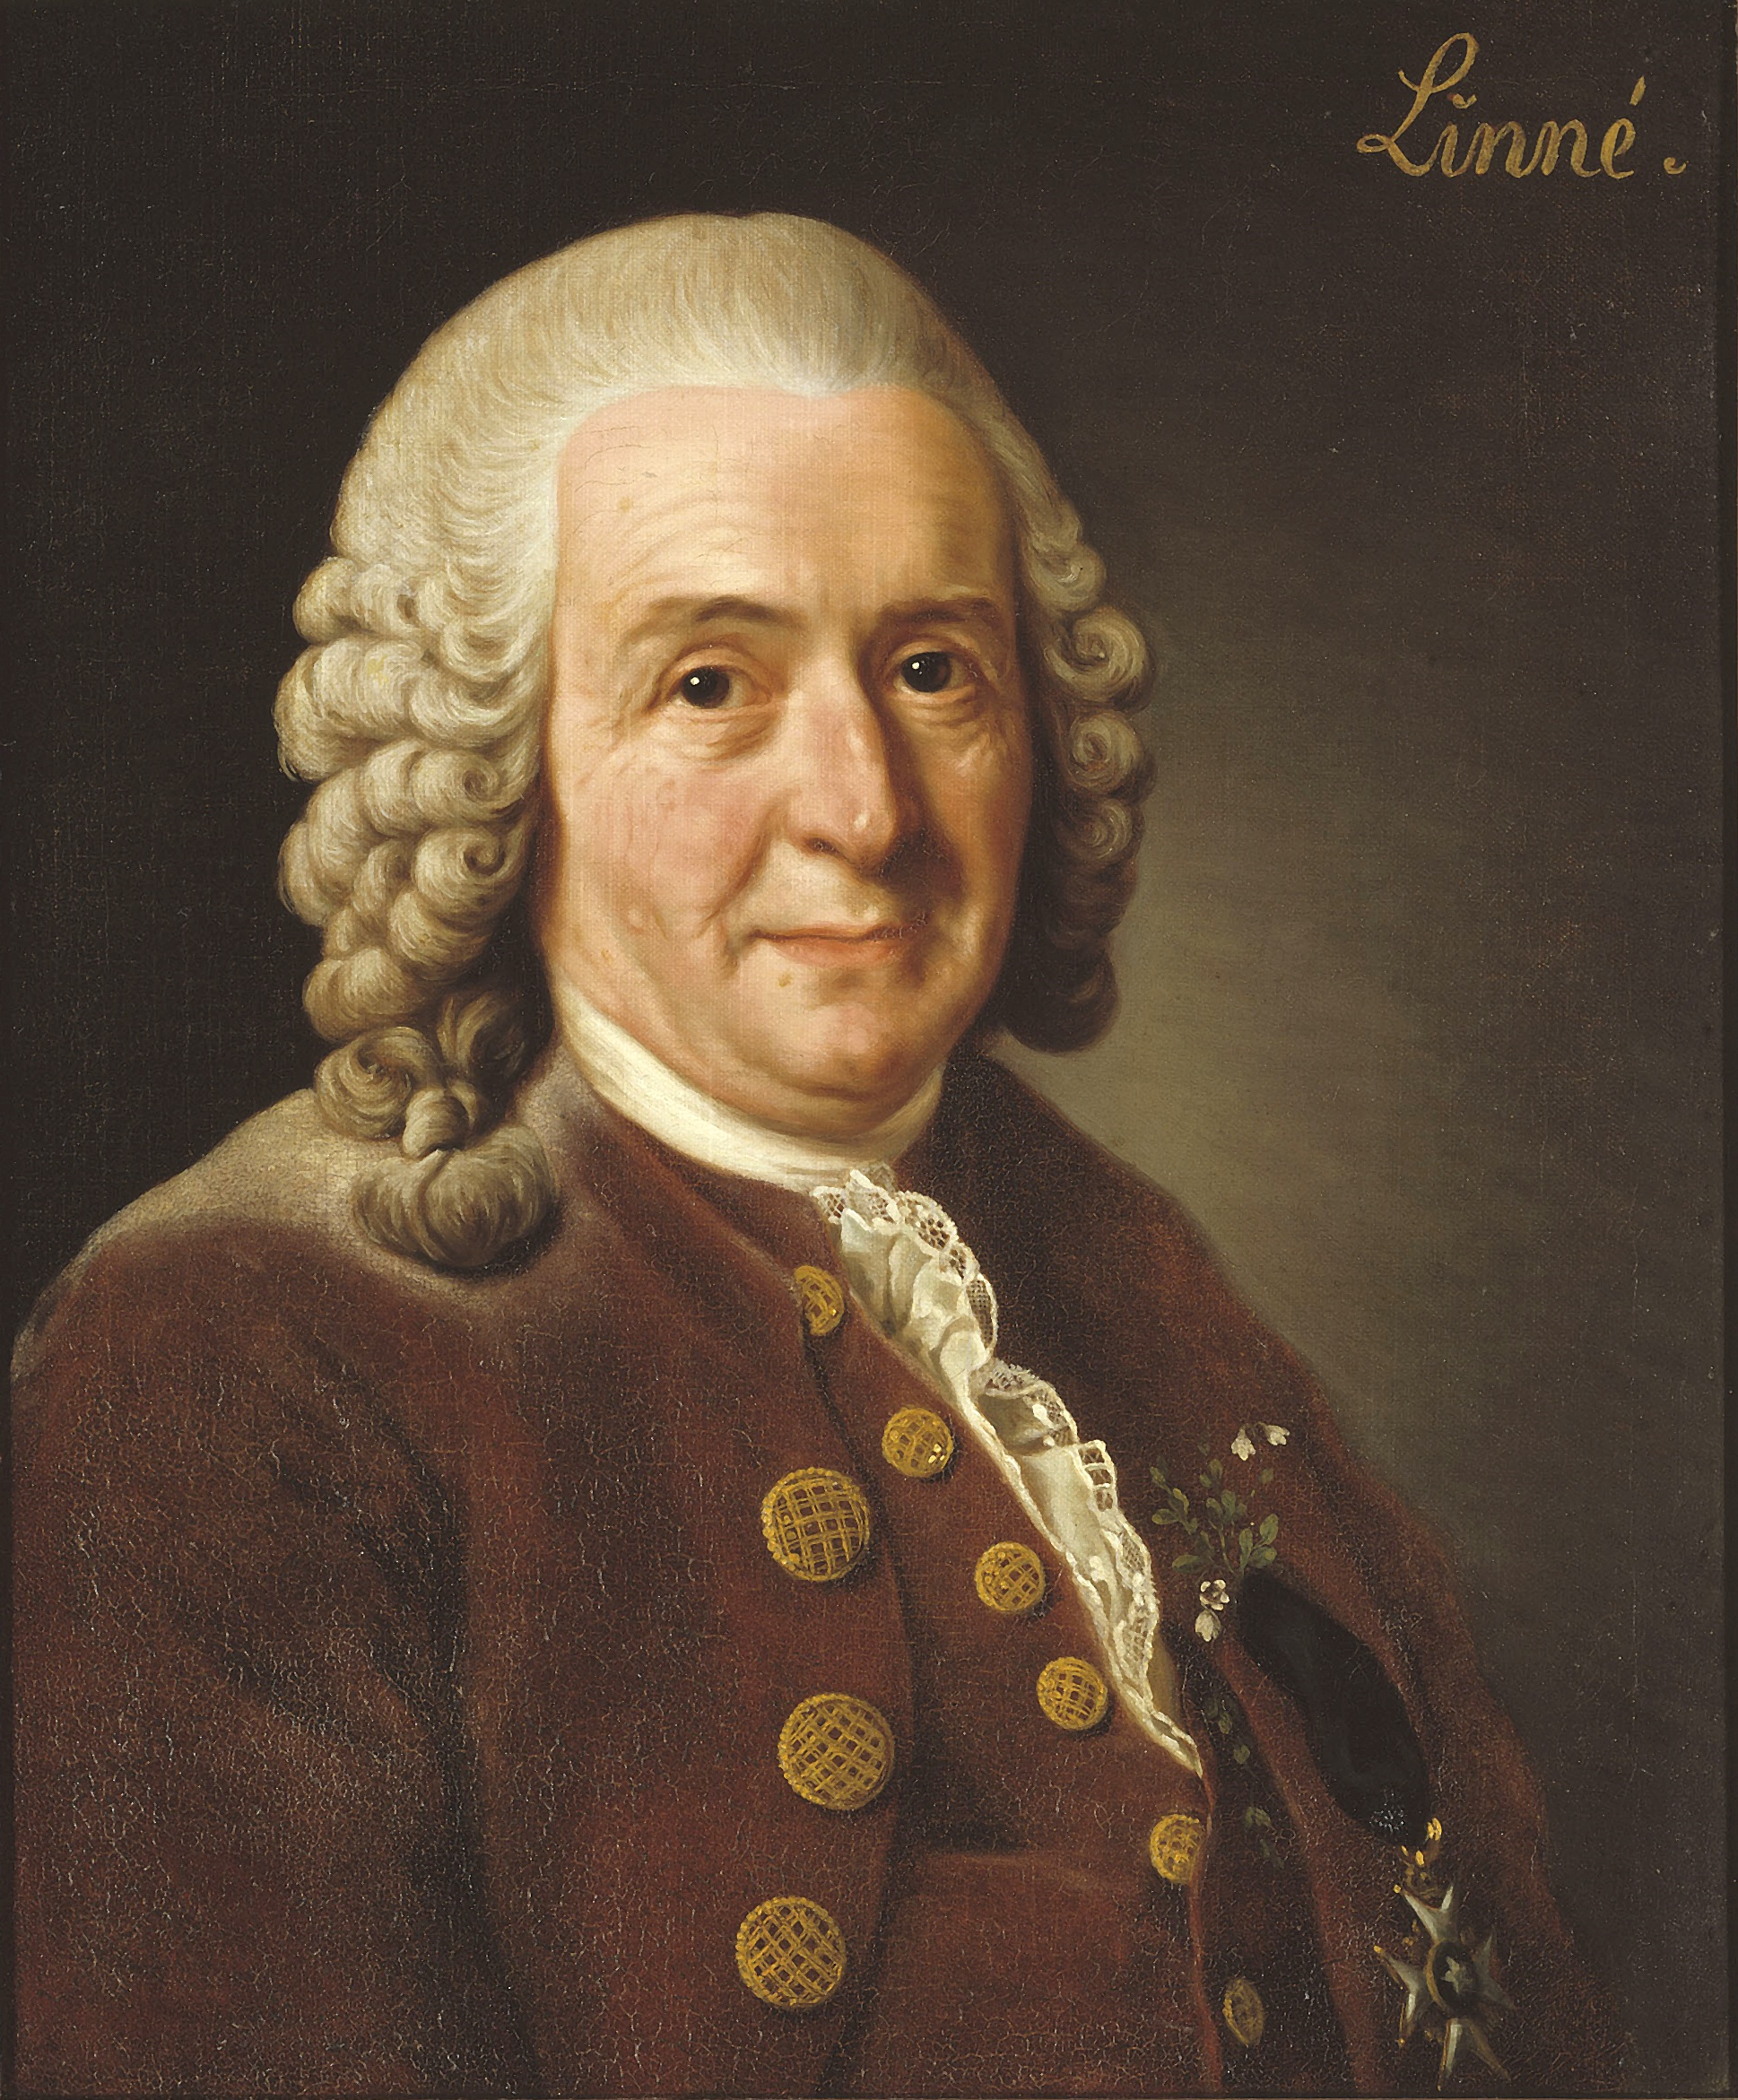 The famous Swedish naturalist Carl von Linné (1707-1778).